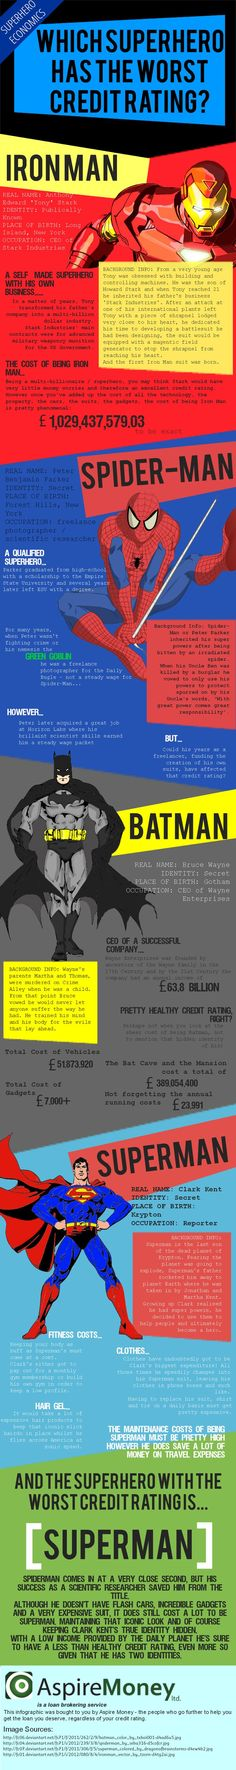 Infographic: Which Superhero Has The Worst Creditrating?